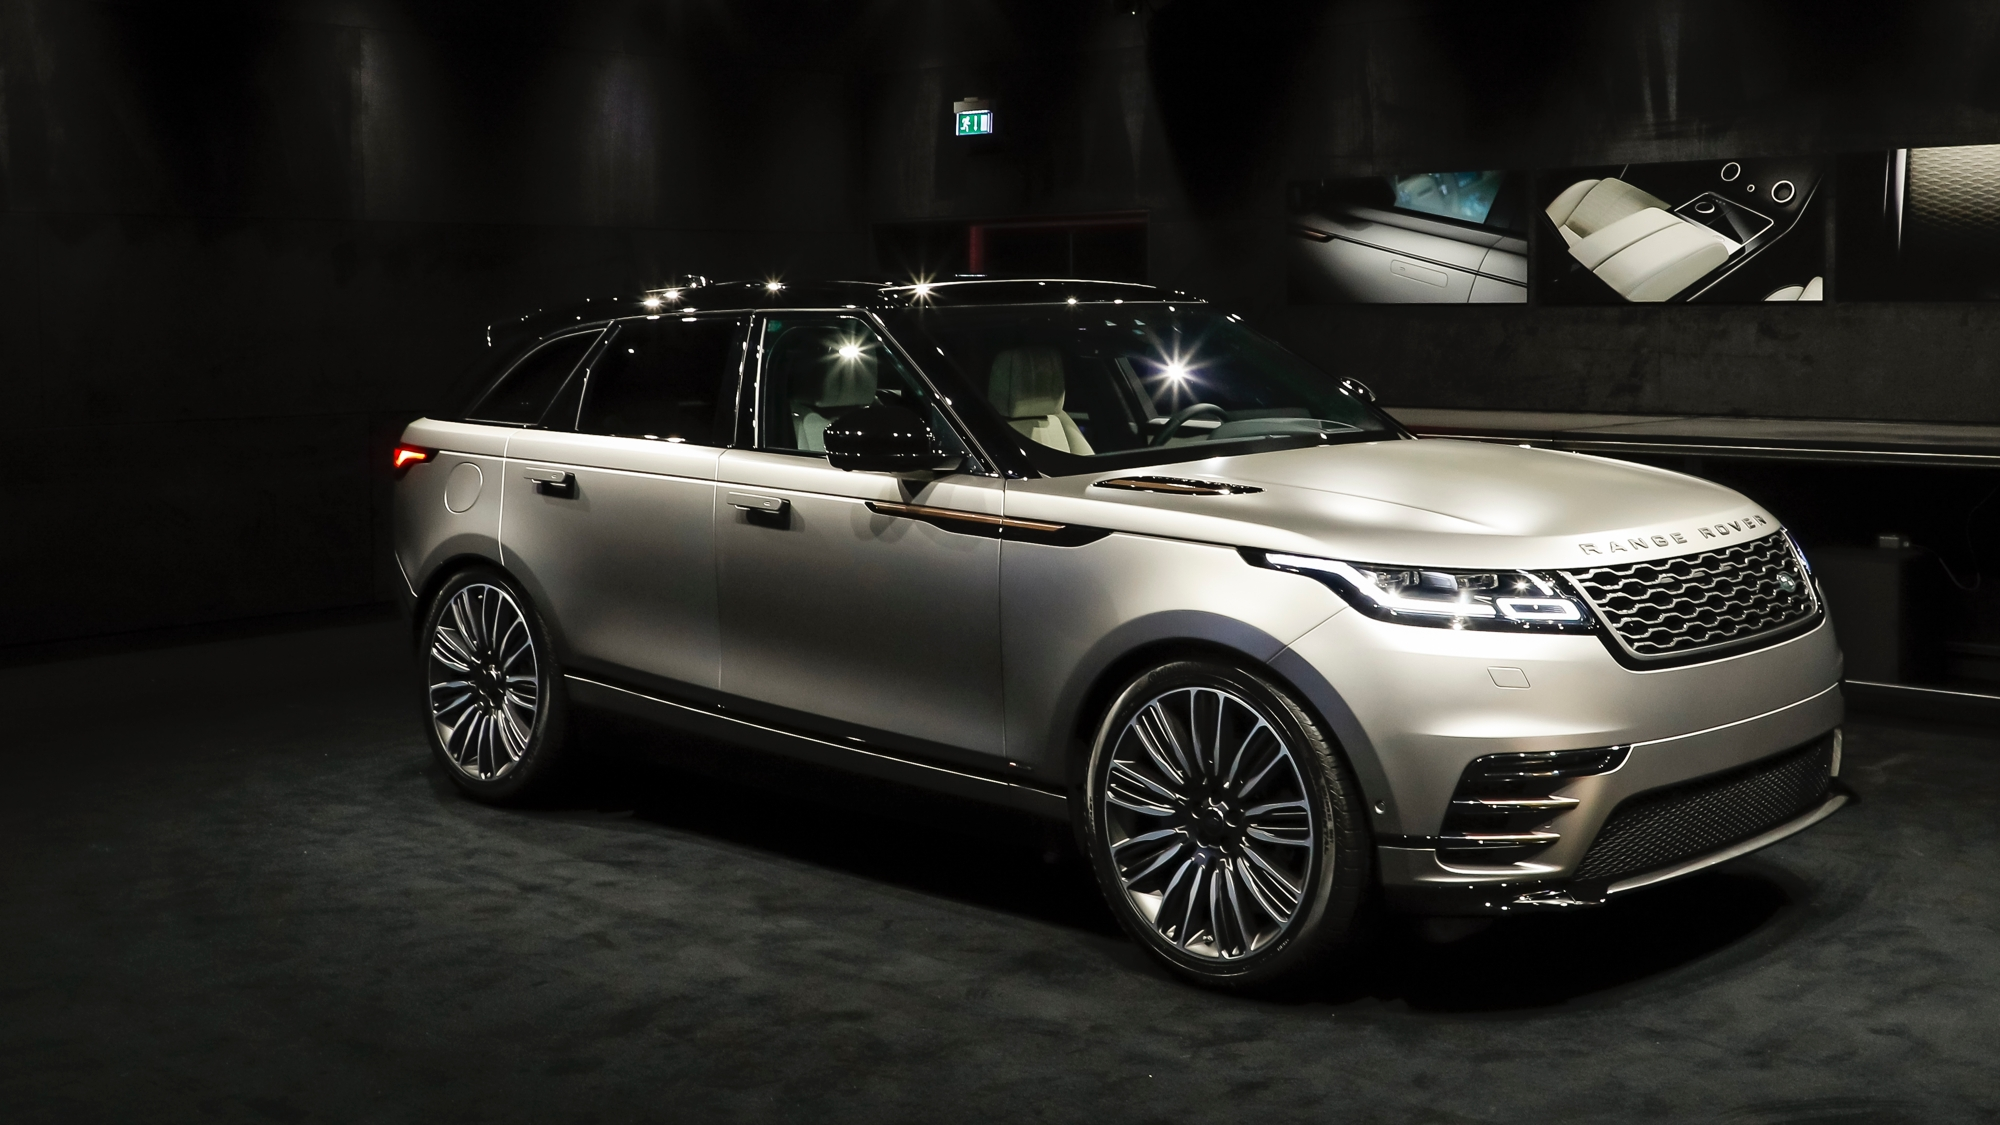 range rover velar seid bei der deutschland premiere in. Black Bedroom Furniture Sets. Home Design Ideas